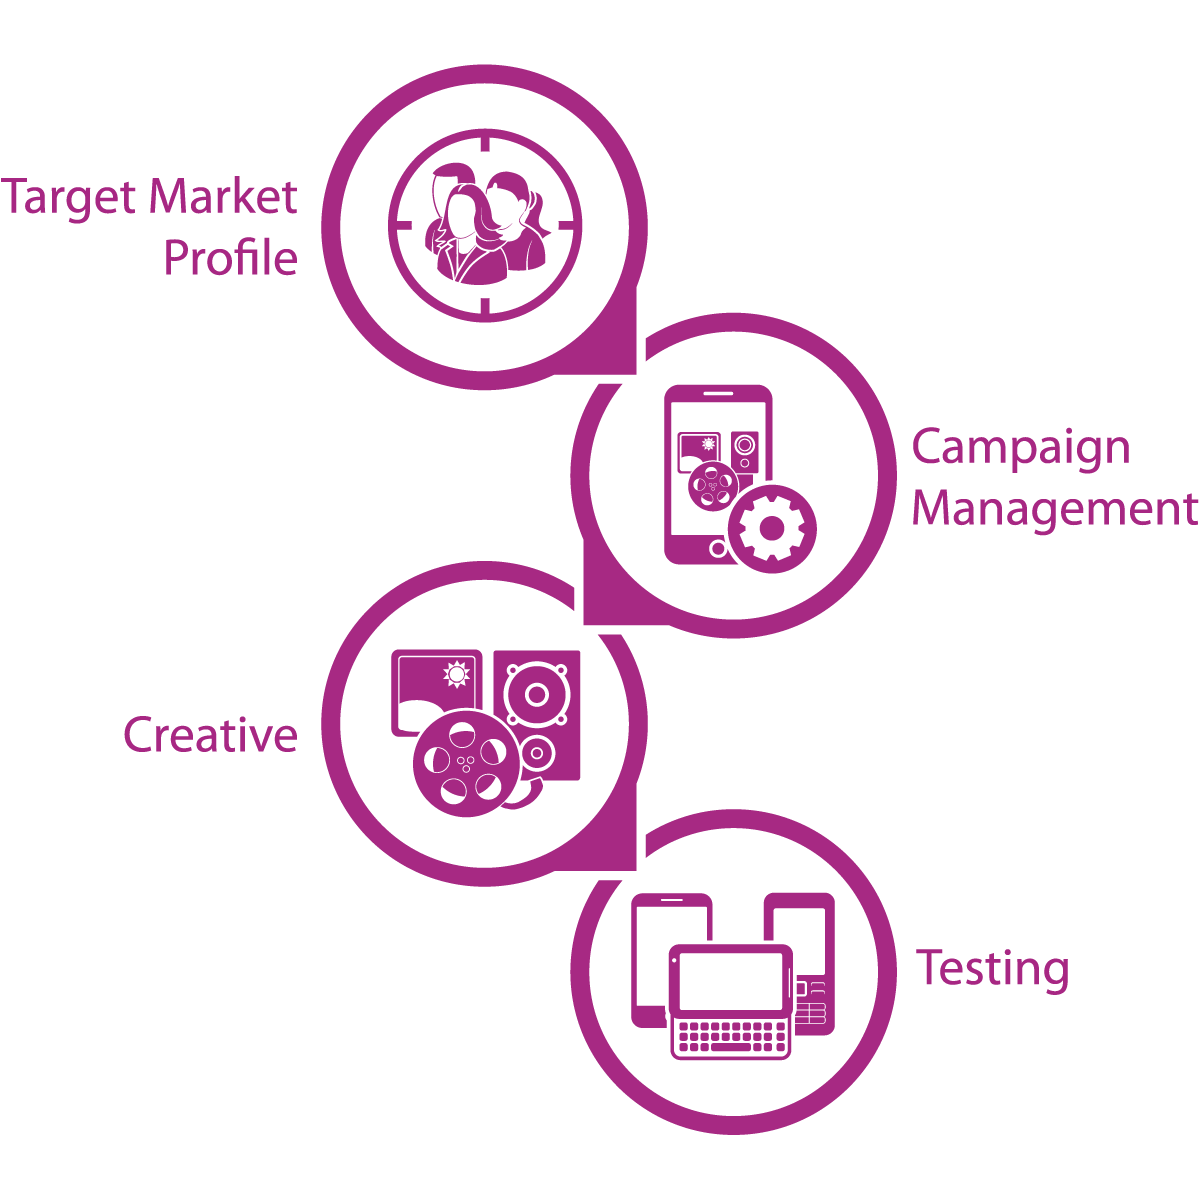 RMT campaign management process